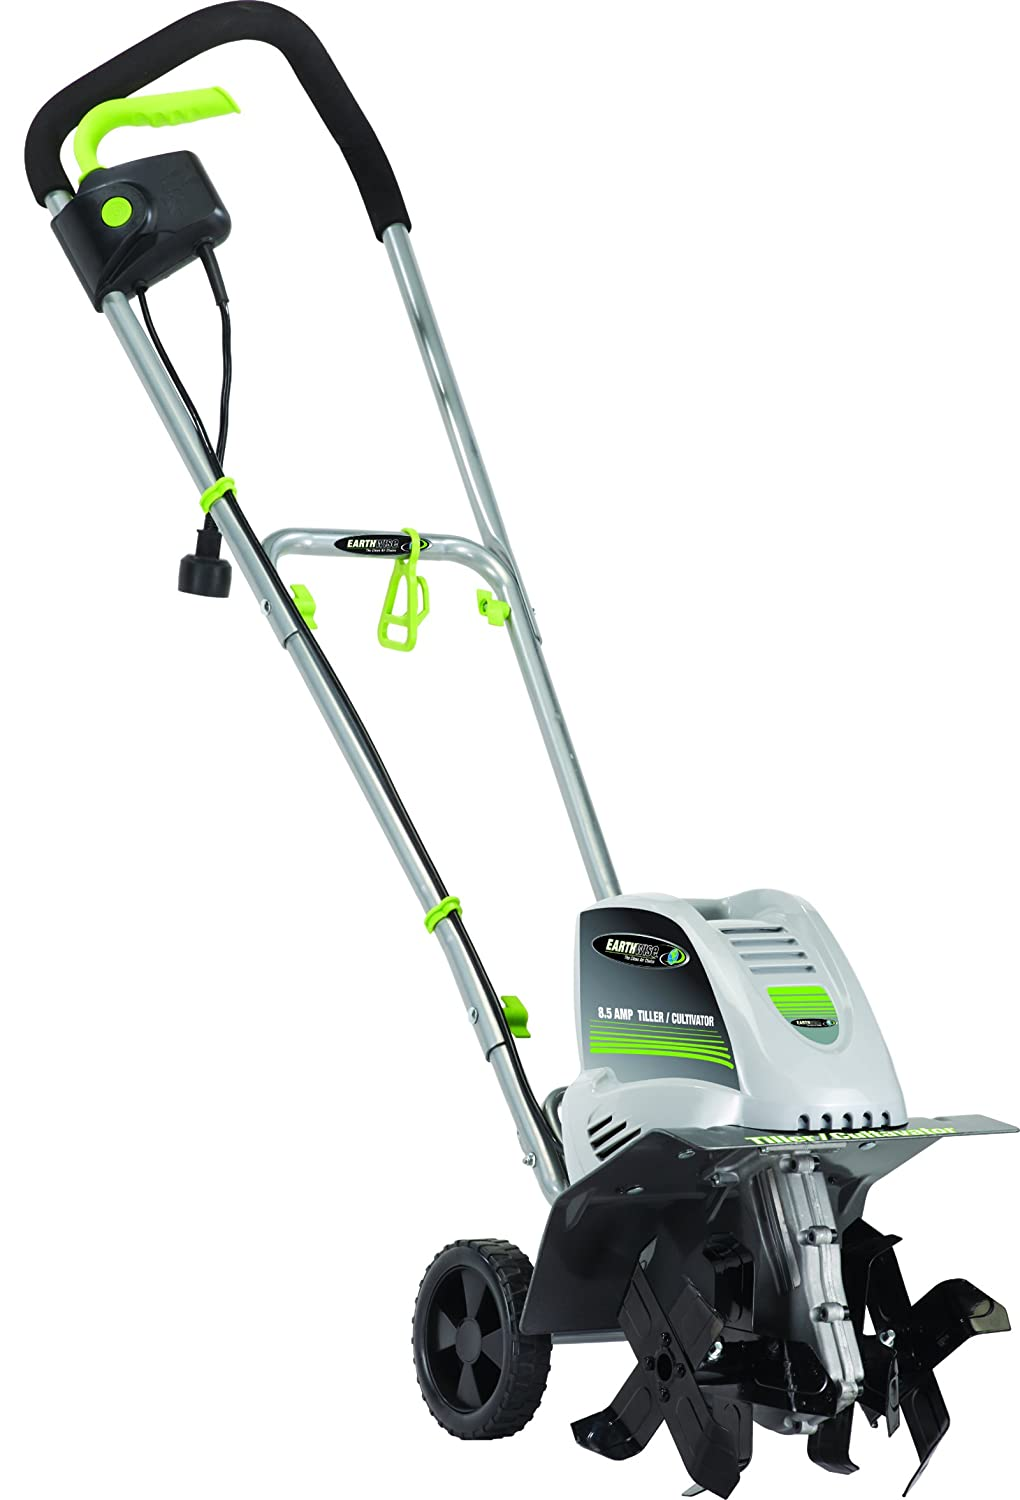 Amazoncom Earthwise 11 Inch 85 Amp Corded Electric Tiller and